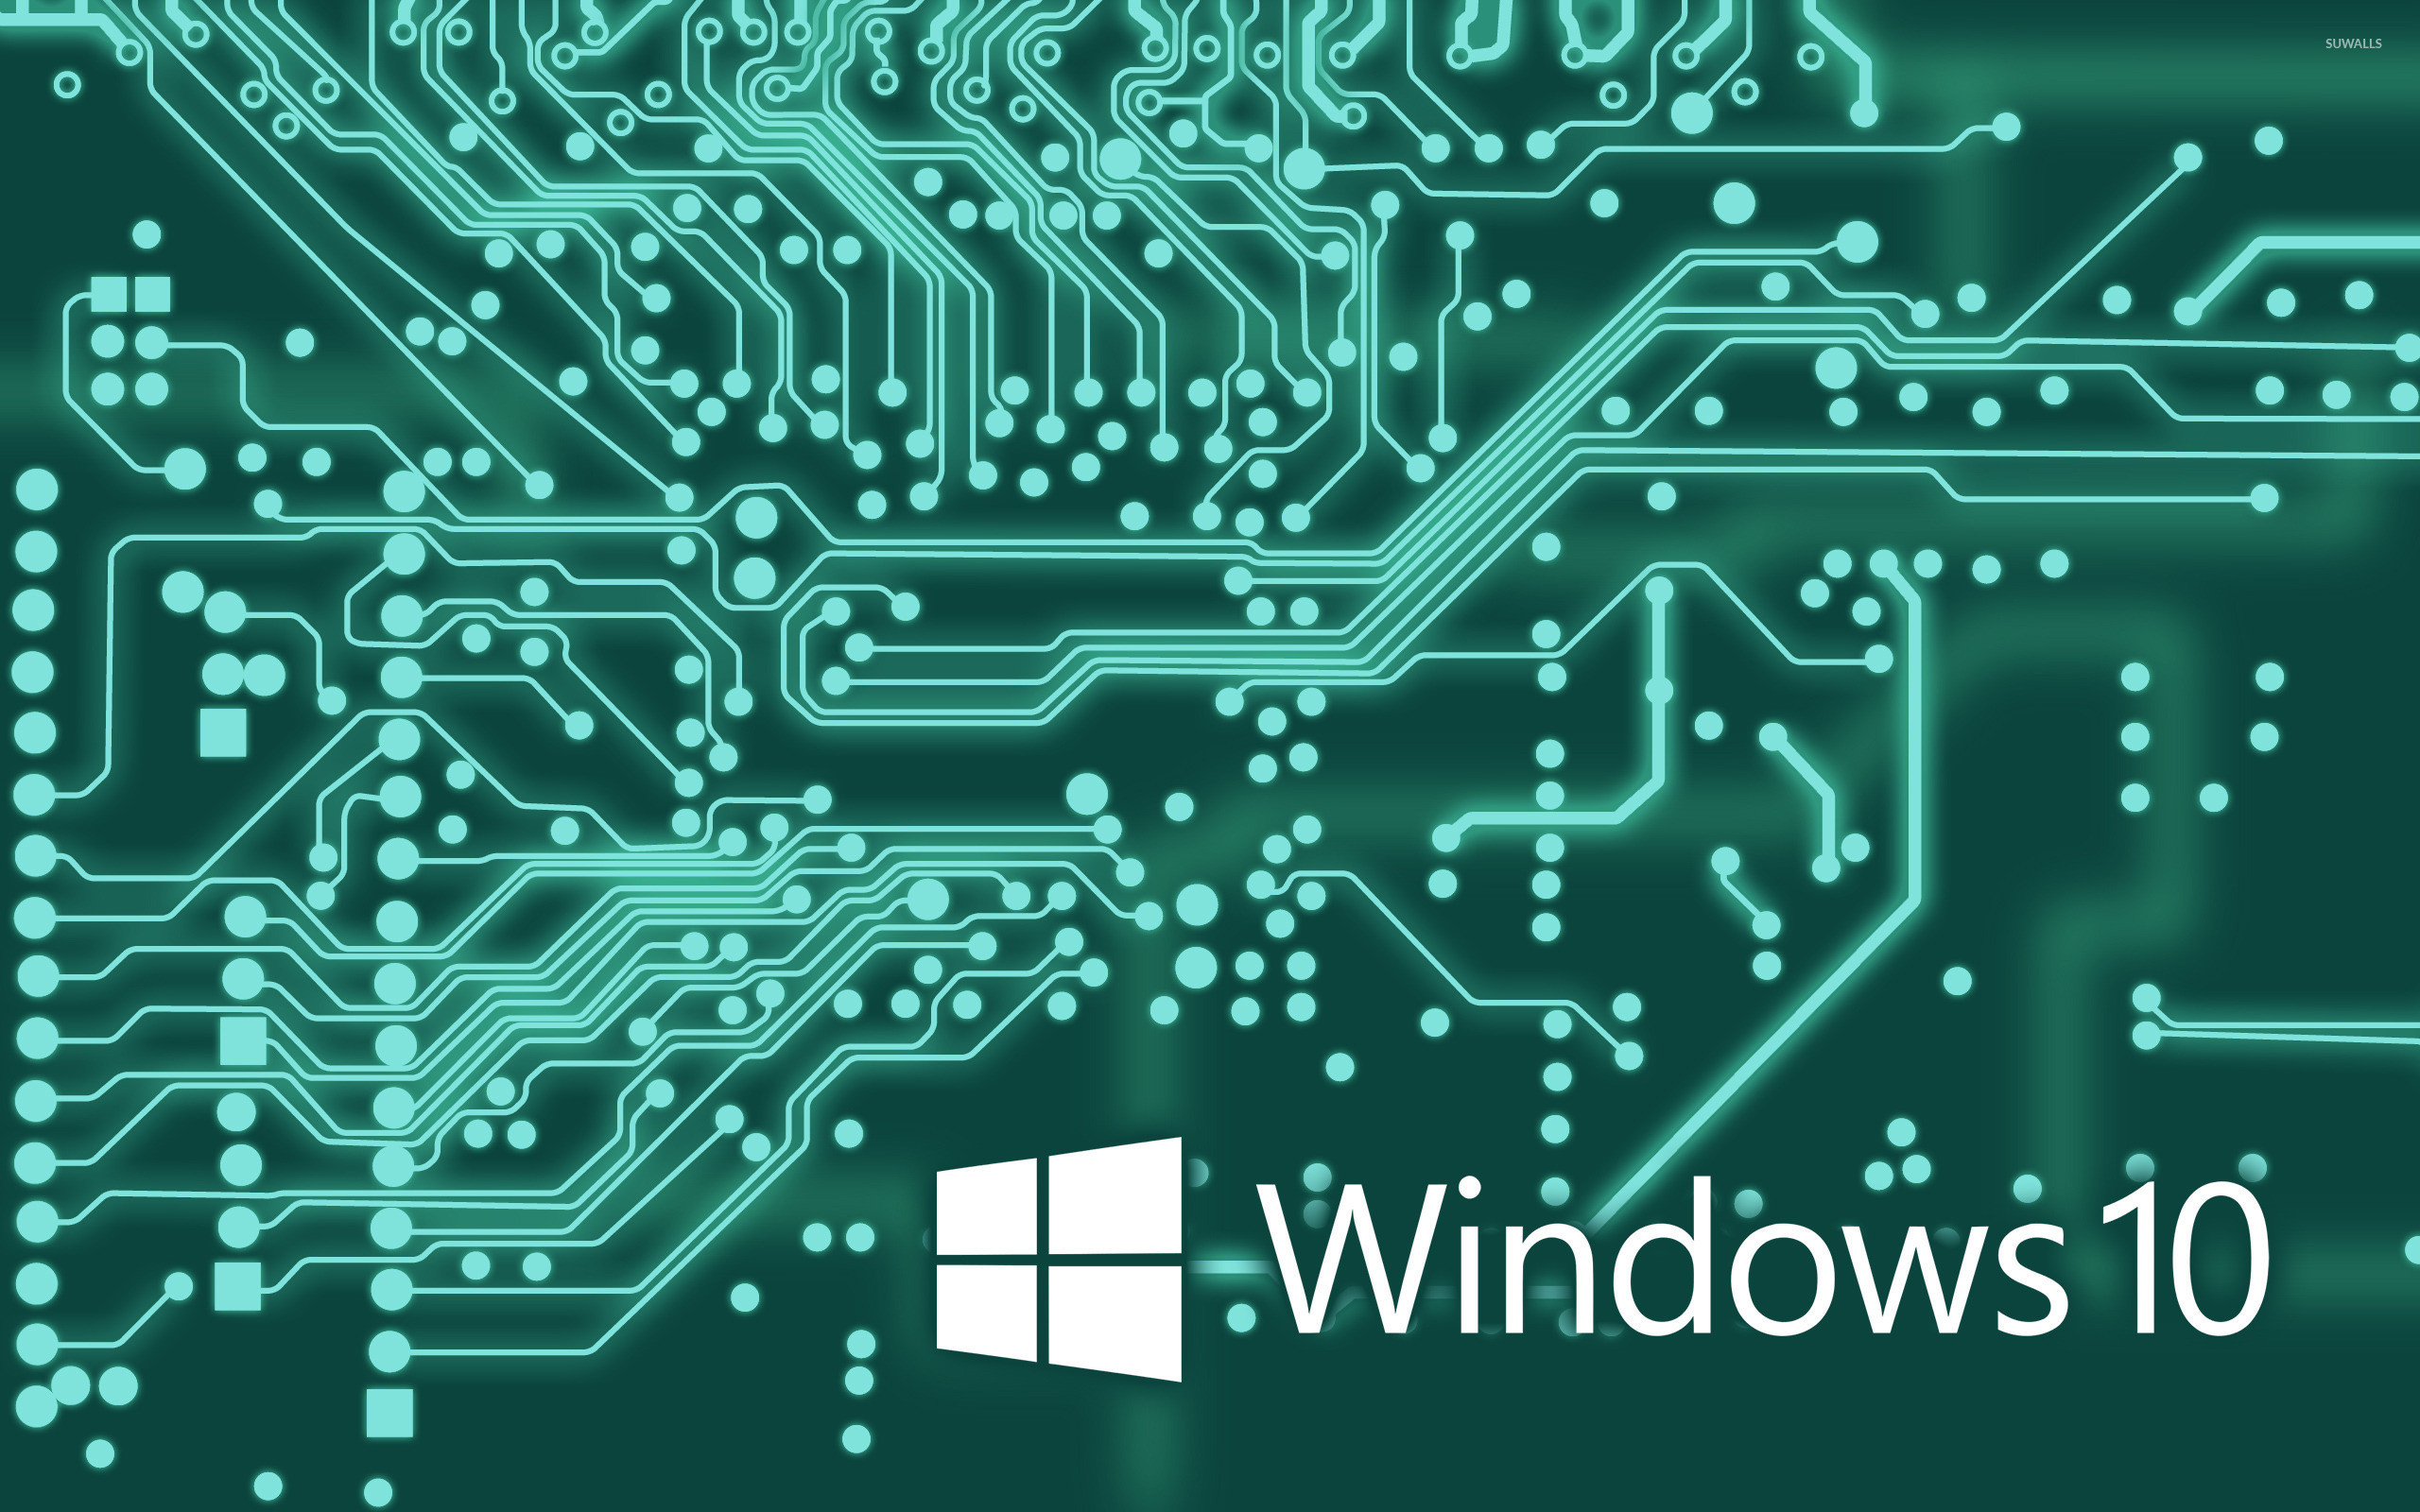 2560x1600 Windows 10 white text logo on the circuit board wallpaper